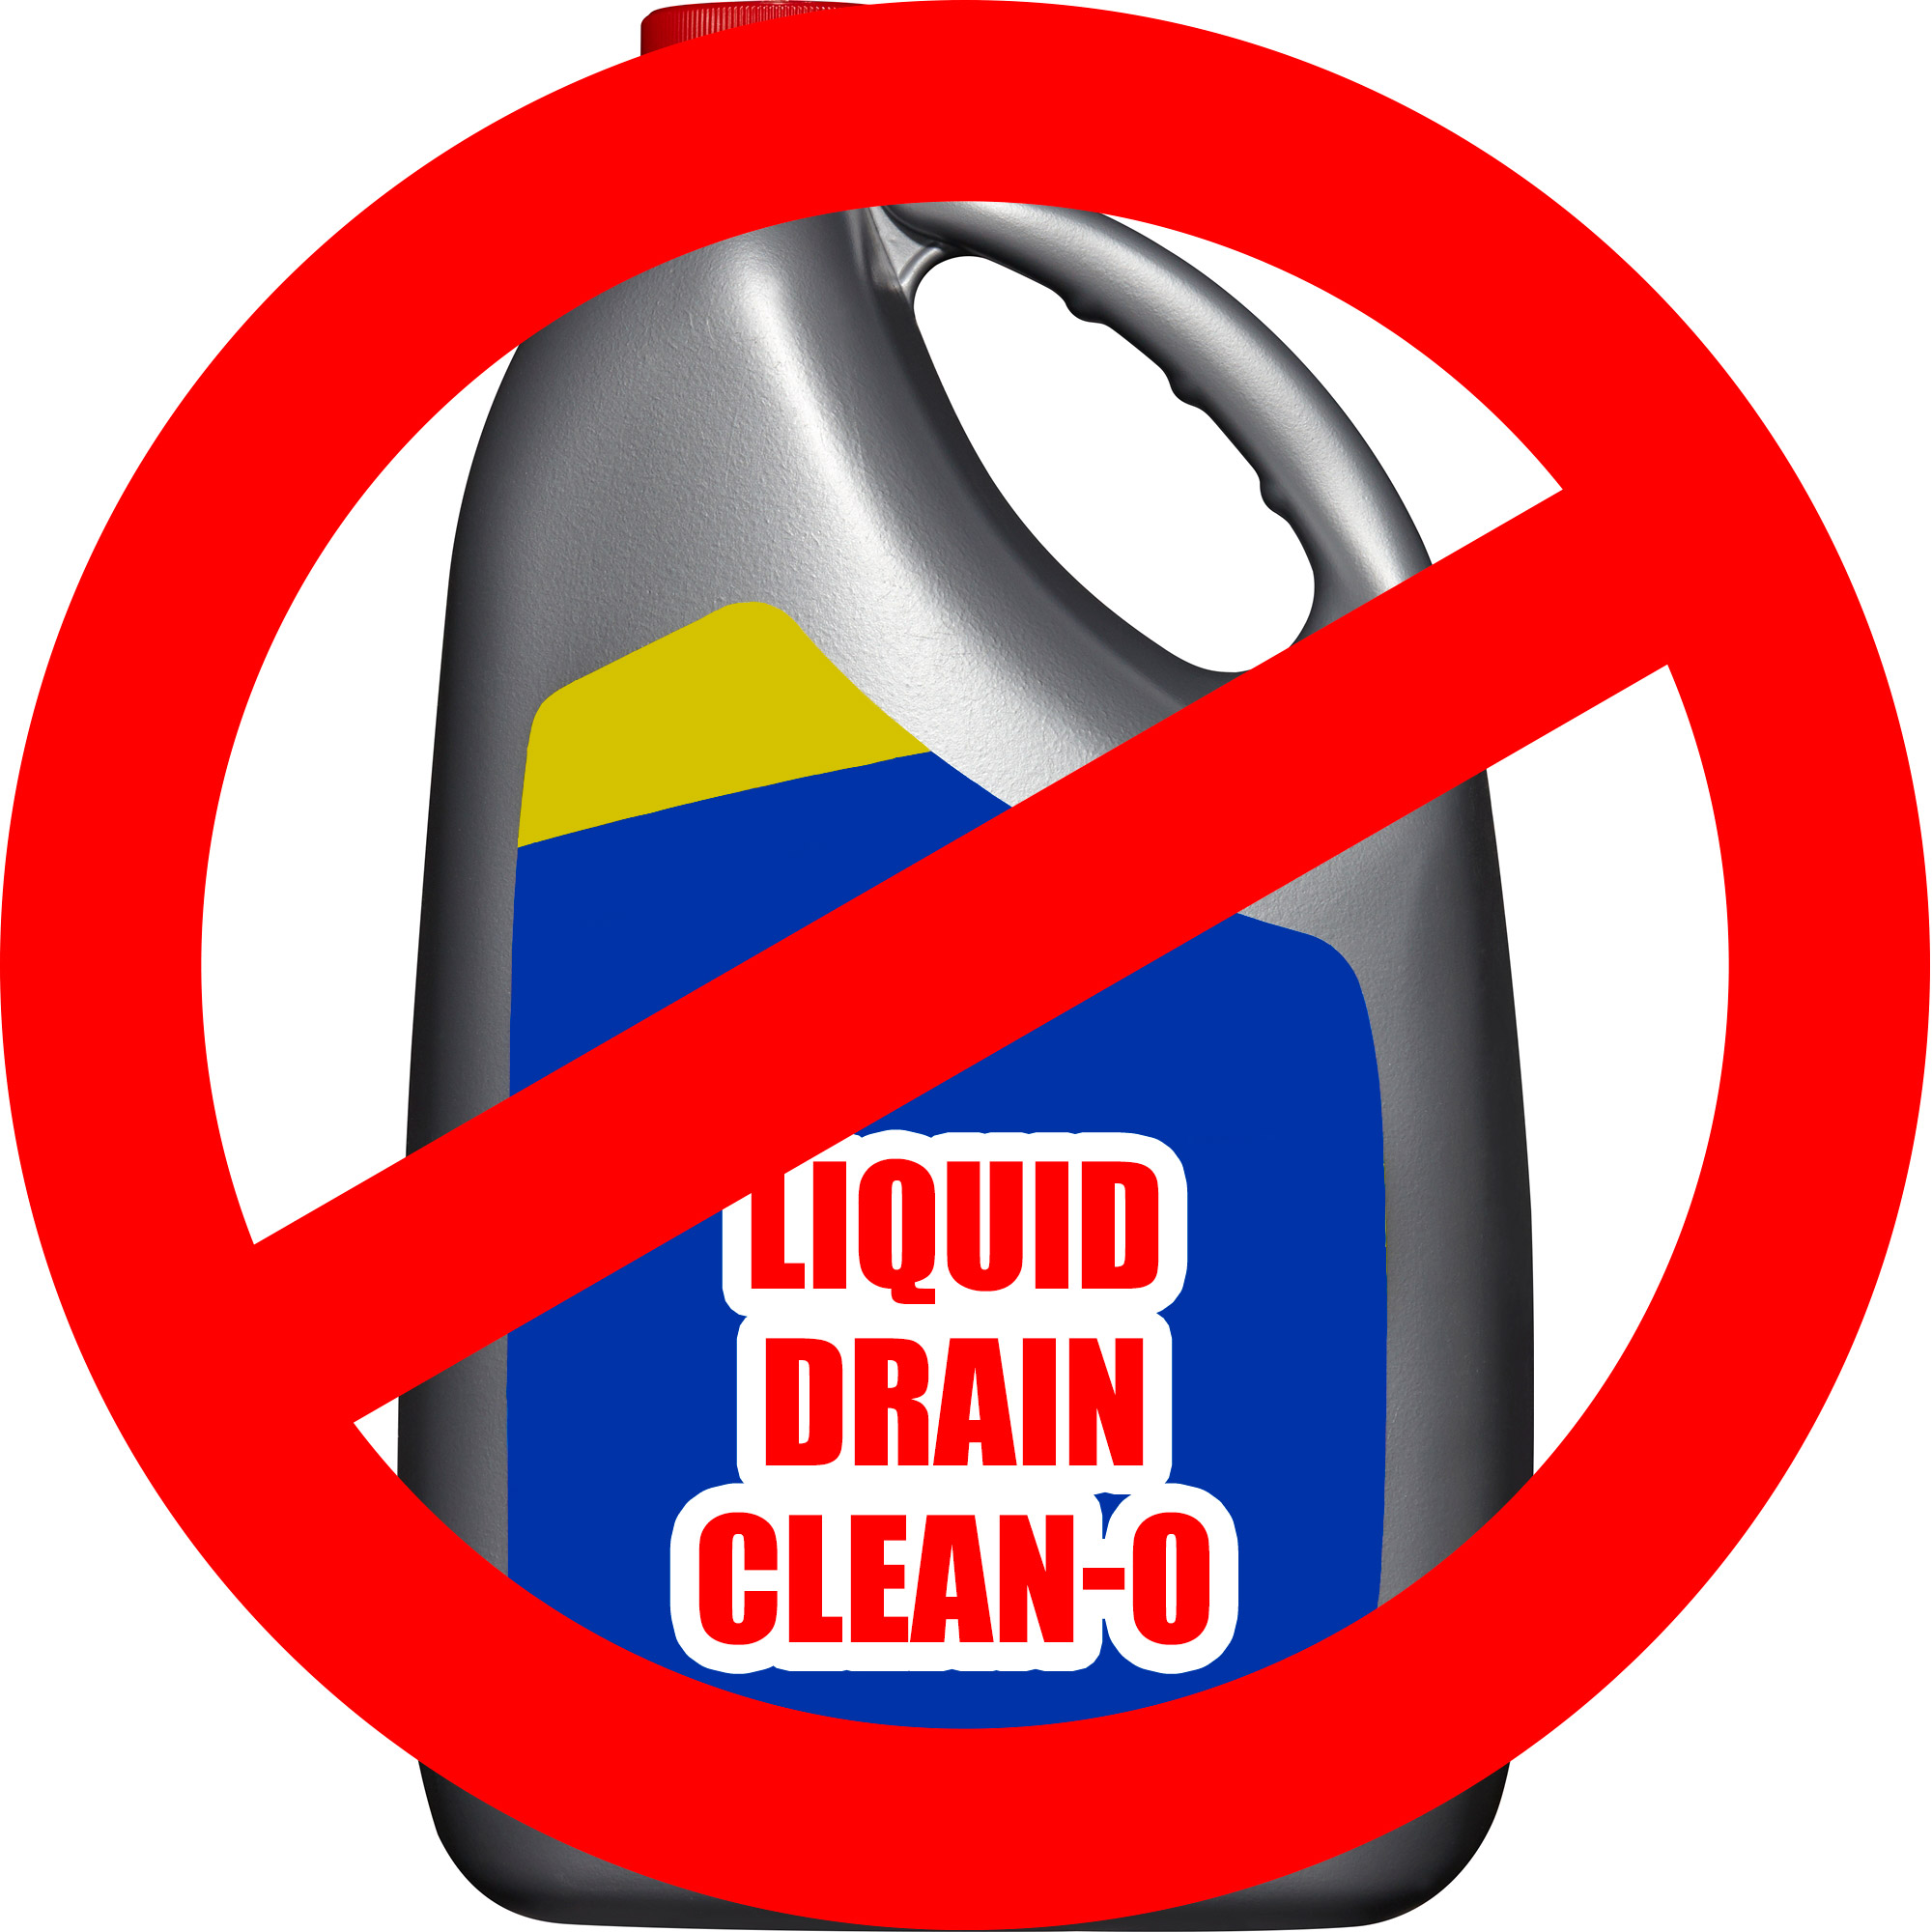 When your toilet or drain clogs, do you reach for a liquid, chemical clog remover? Did you know, plumbers strongly recommend against using chemical drain clog removers? They're hard on your plumbing, environmental and safety hazards as well.